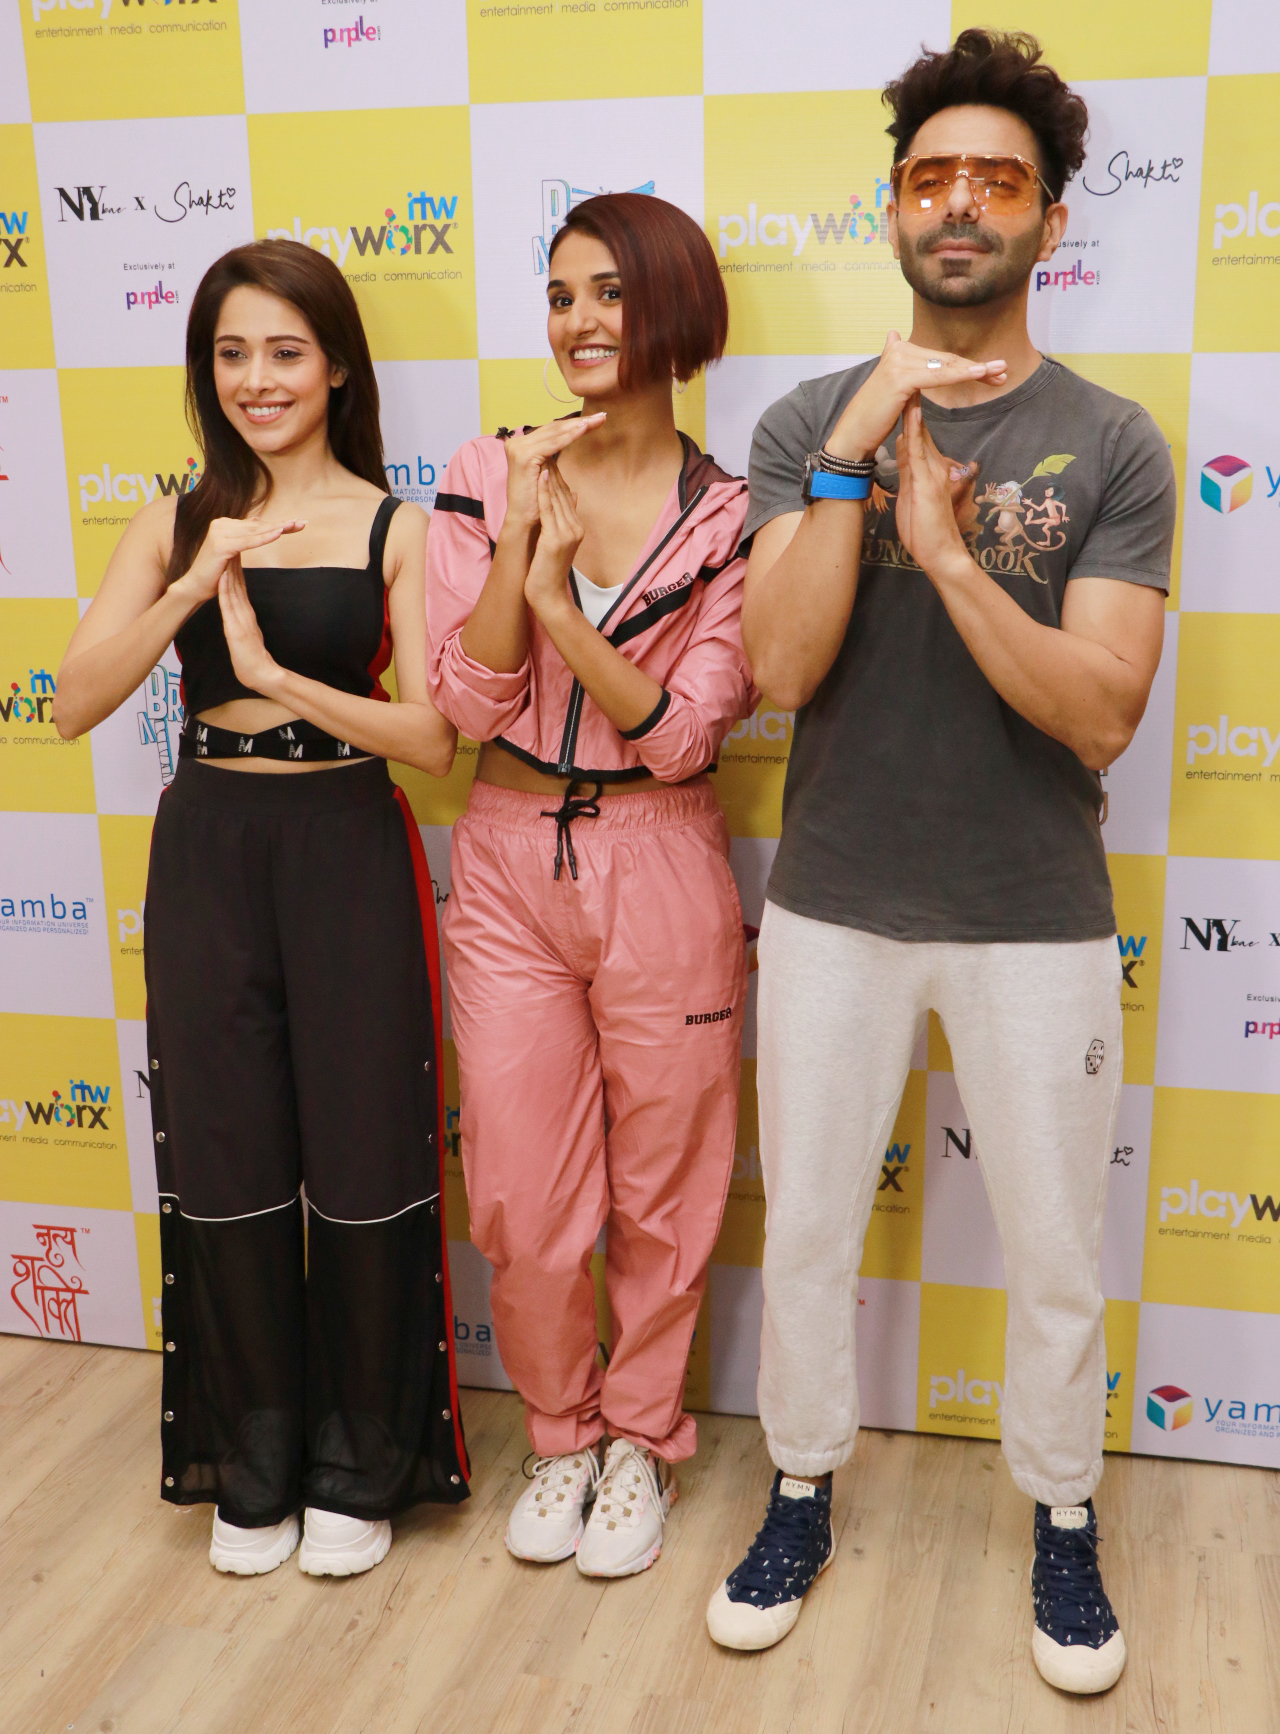 Bollywood actor Aparshkti Khurana & Nushrat Bharucha for episode shoot of Break A Leg Season 2 with host Shakti Mohan at Nritya Shakti Studio   Shoot of Break A Leg Season 2 host Shakti Mohan at Nritya Shakti Studio – Bank of Bollywood IMG 5506